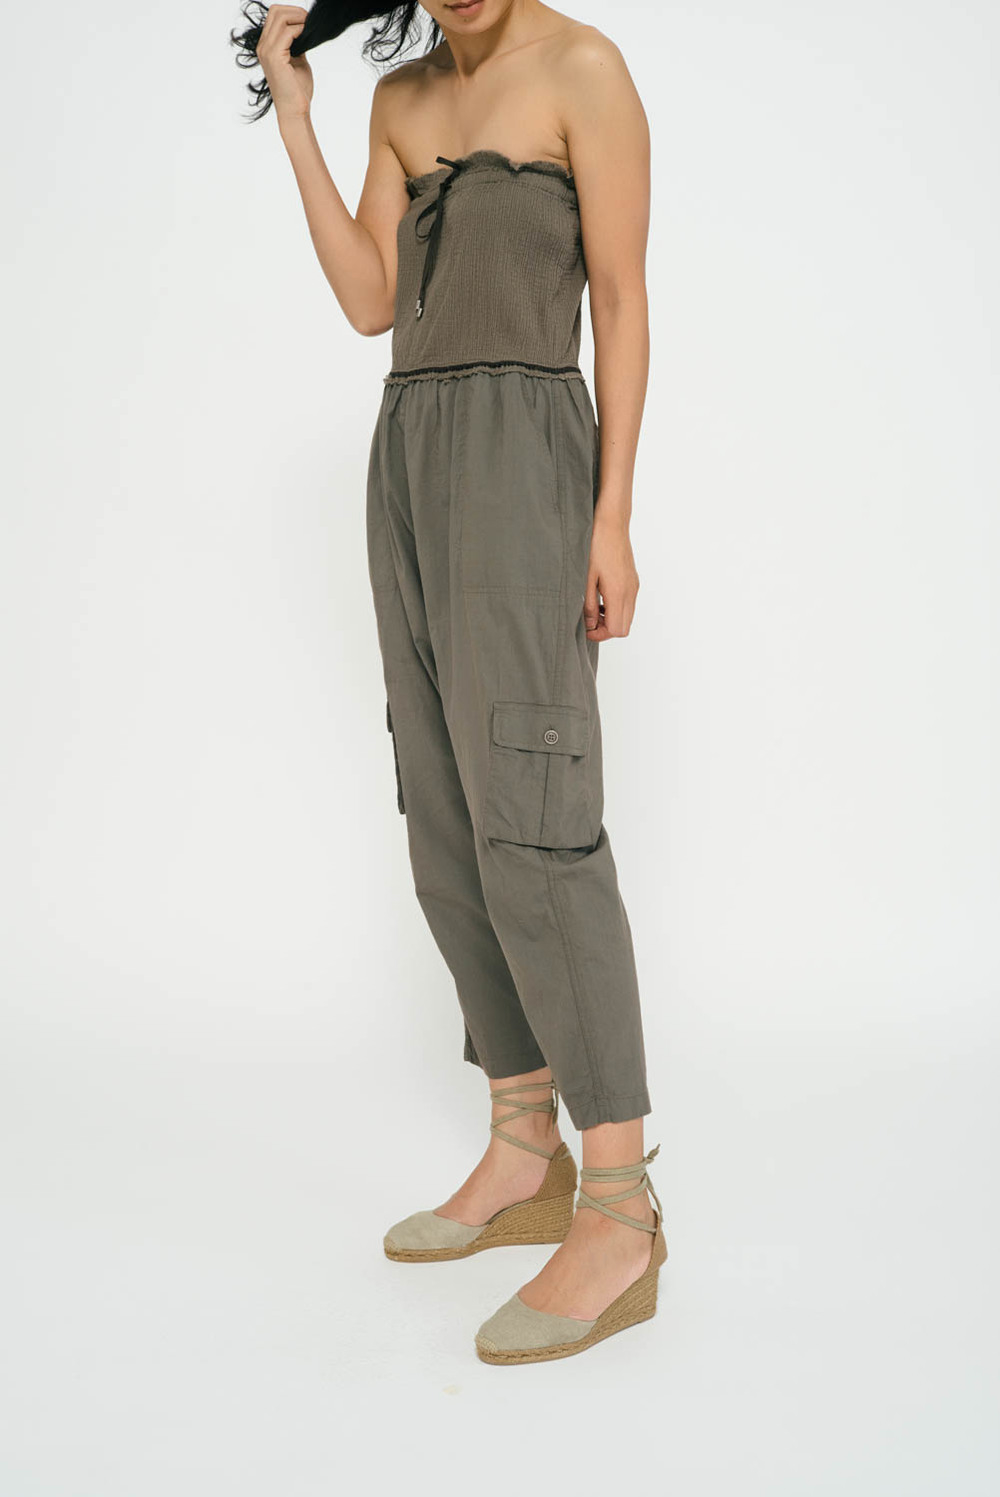 b369918be56 Lyst - Sea Strapless Jumpsuit in Green